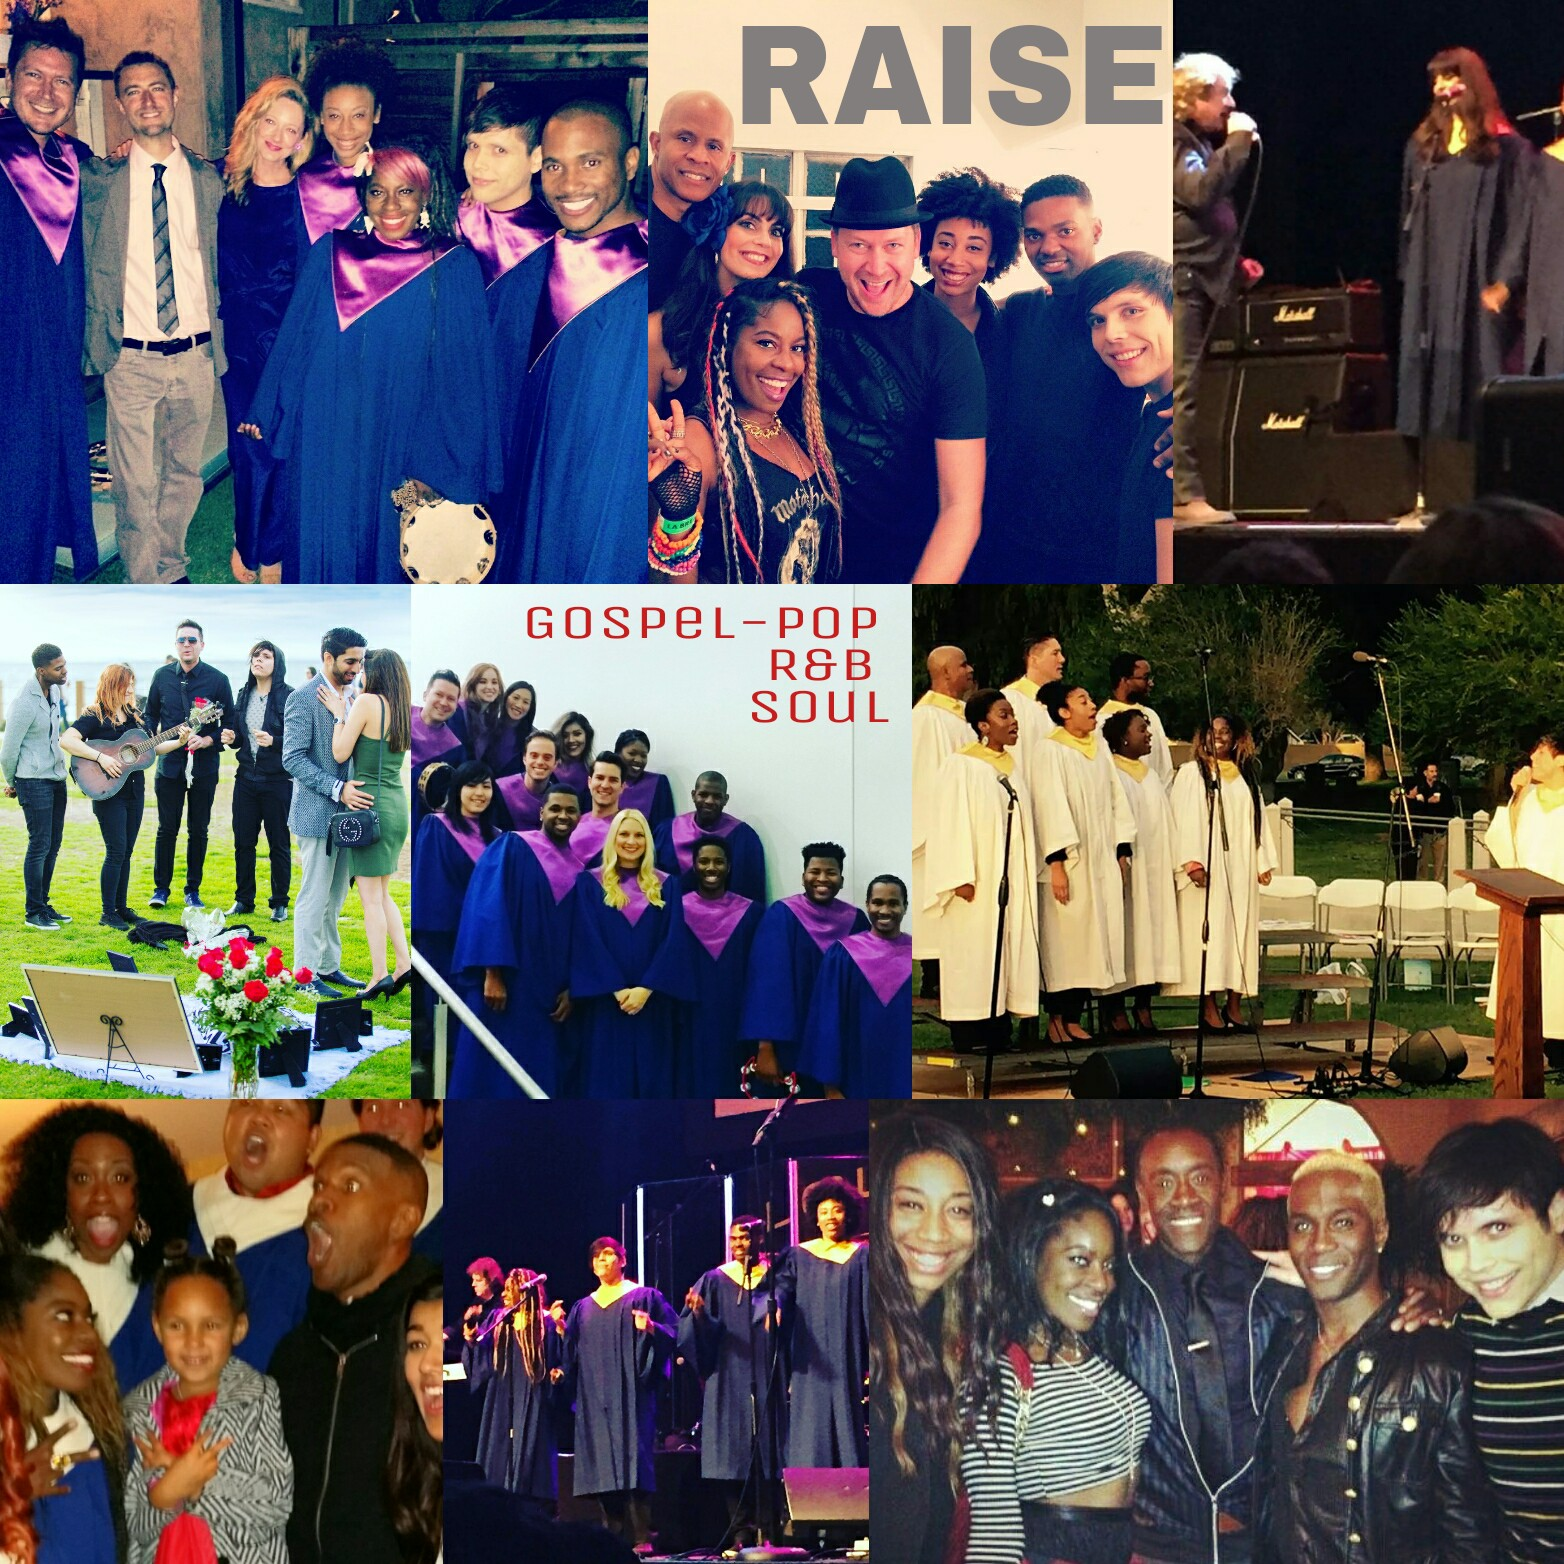 RAISE collage